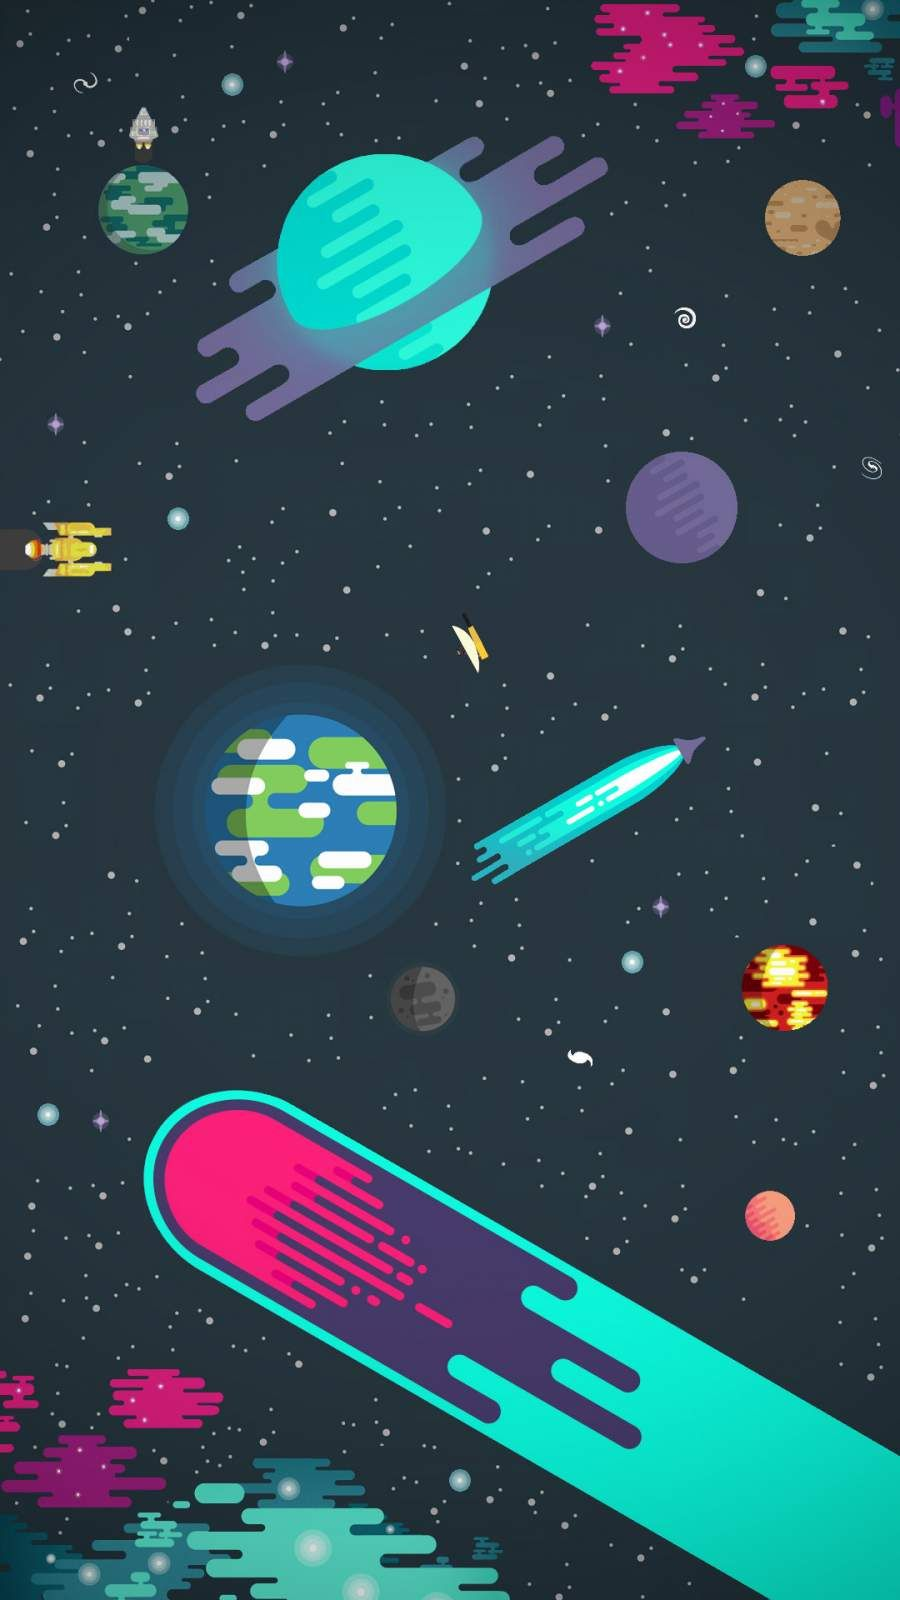 Animated Space Iphone Wallpaper Space Iphone Wallpaper Galaxy Wallpaper Space Art